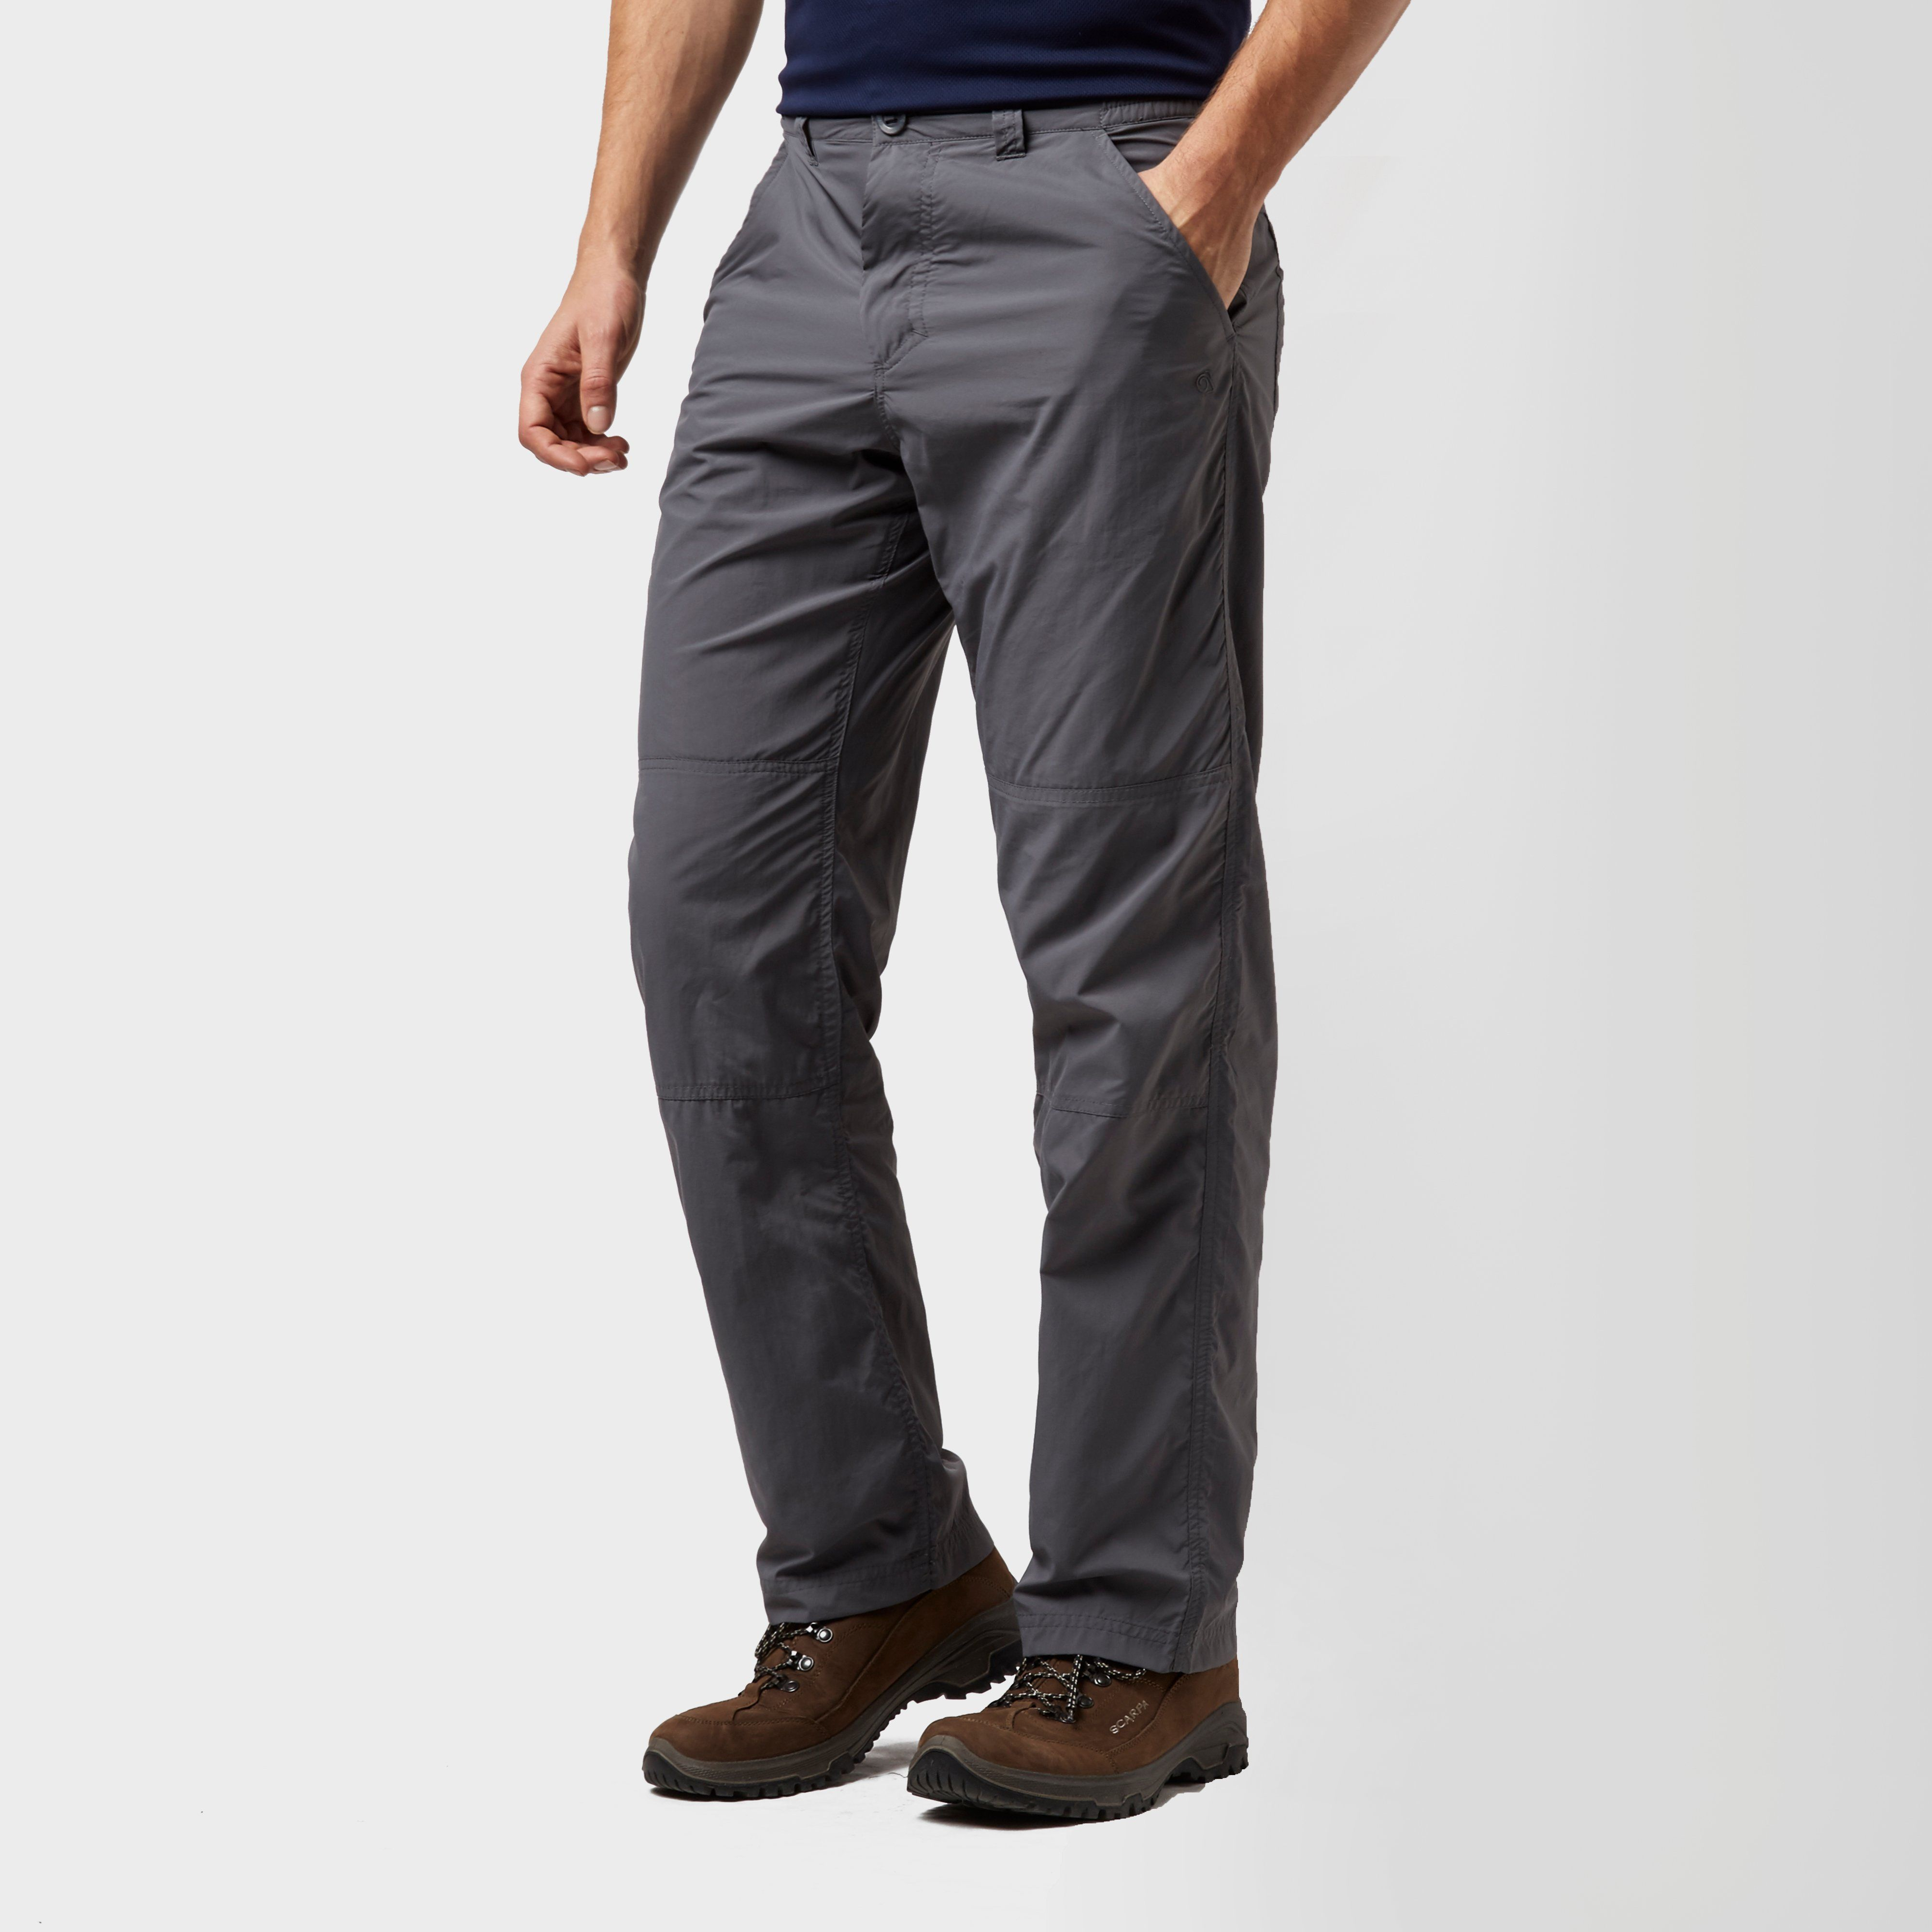 CRAGHOPPERS Men's NosiLife Trousers